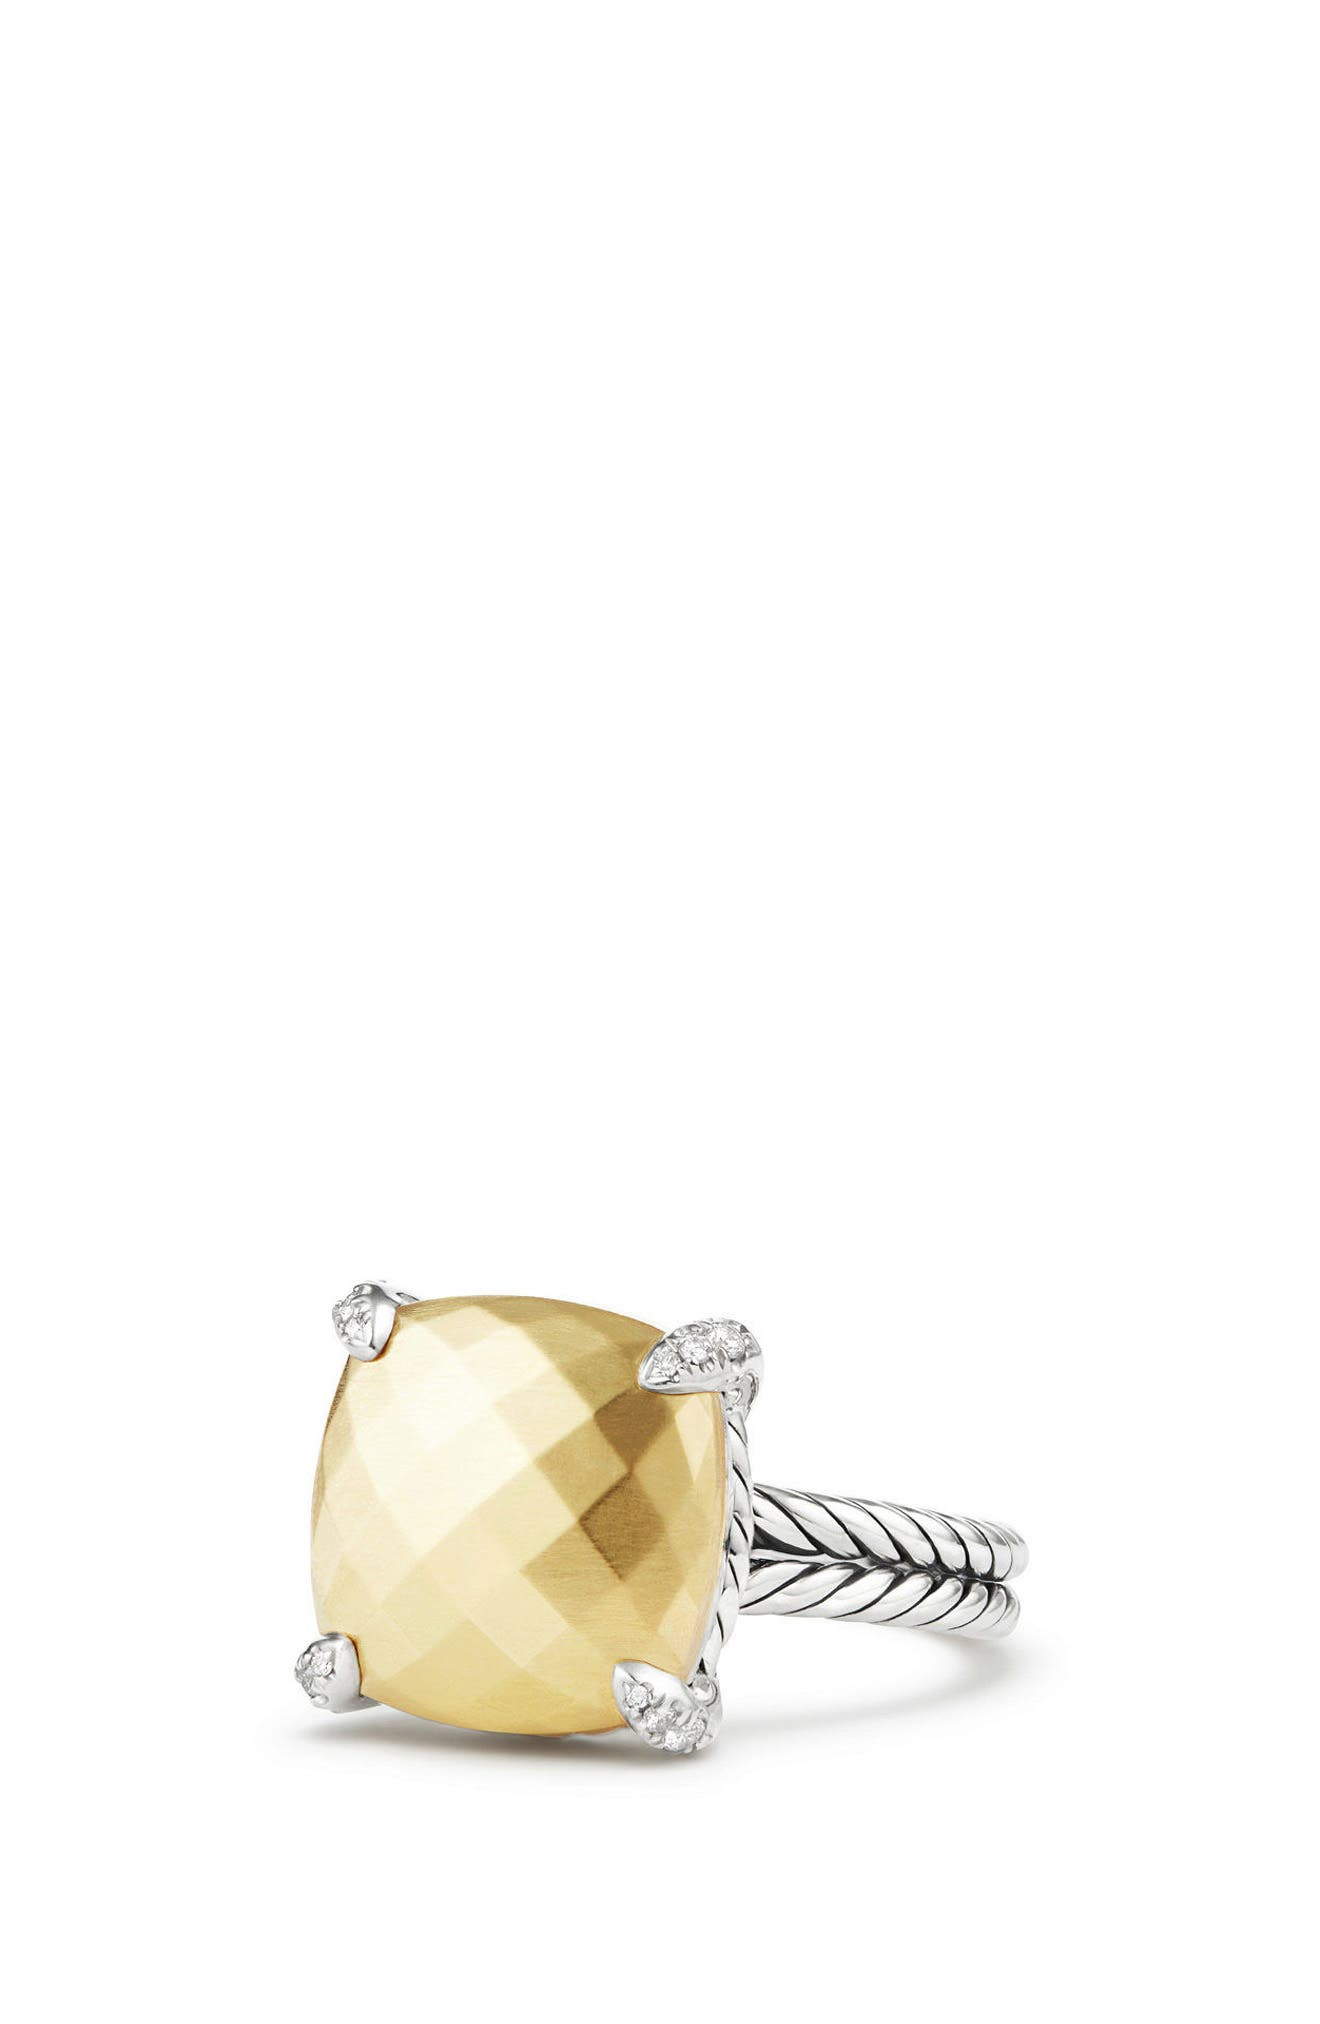 Chatelaine Ring with 18K Gold and Diamonds,                             Main thumbnail 1, color,                             GOLD DOME